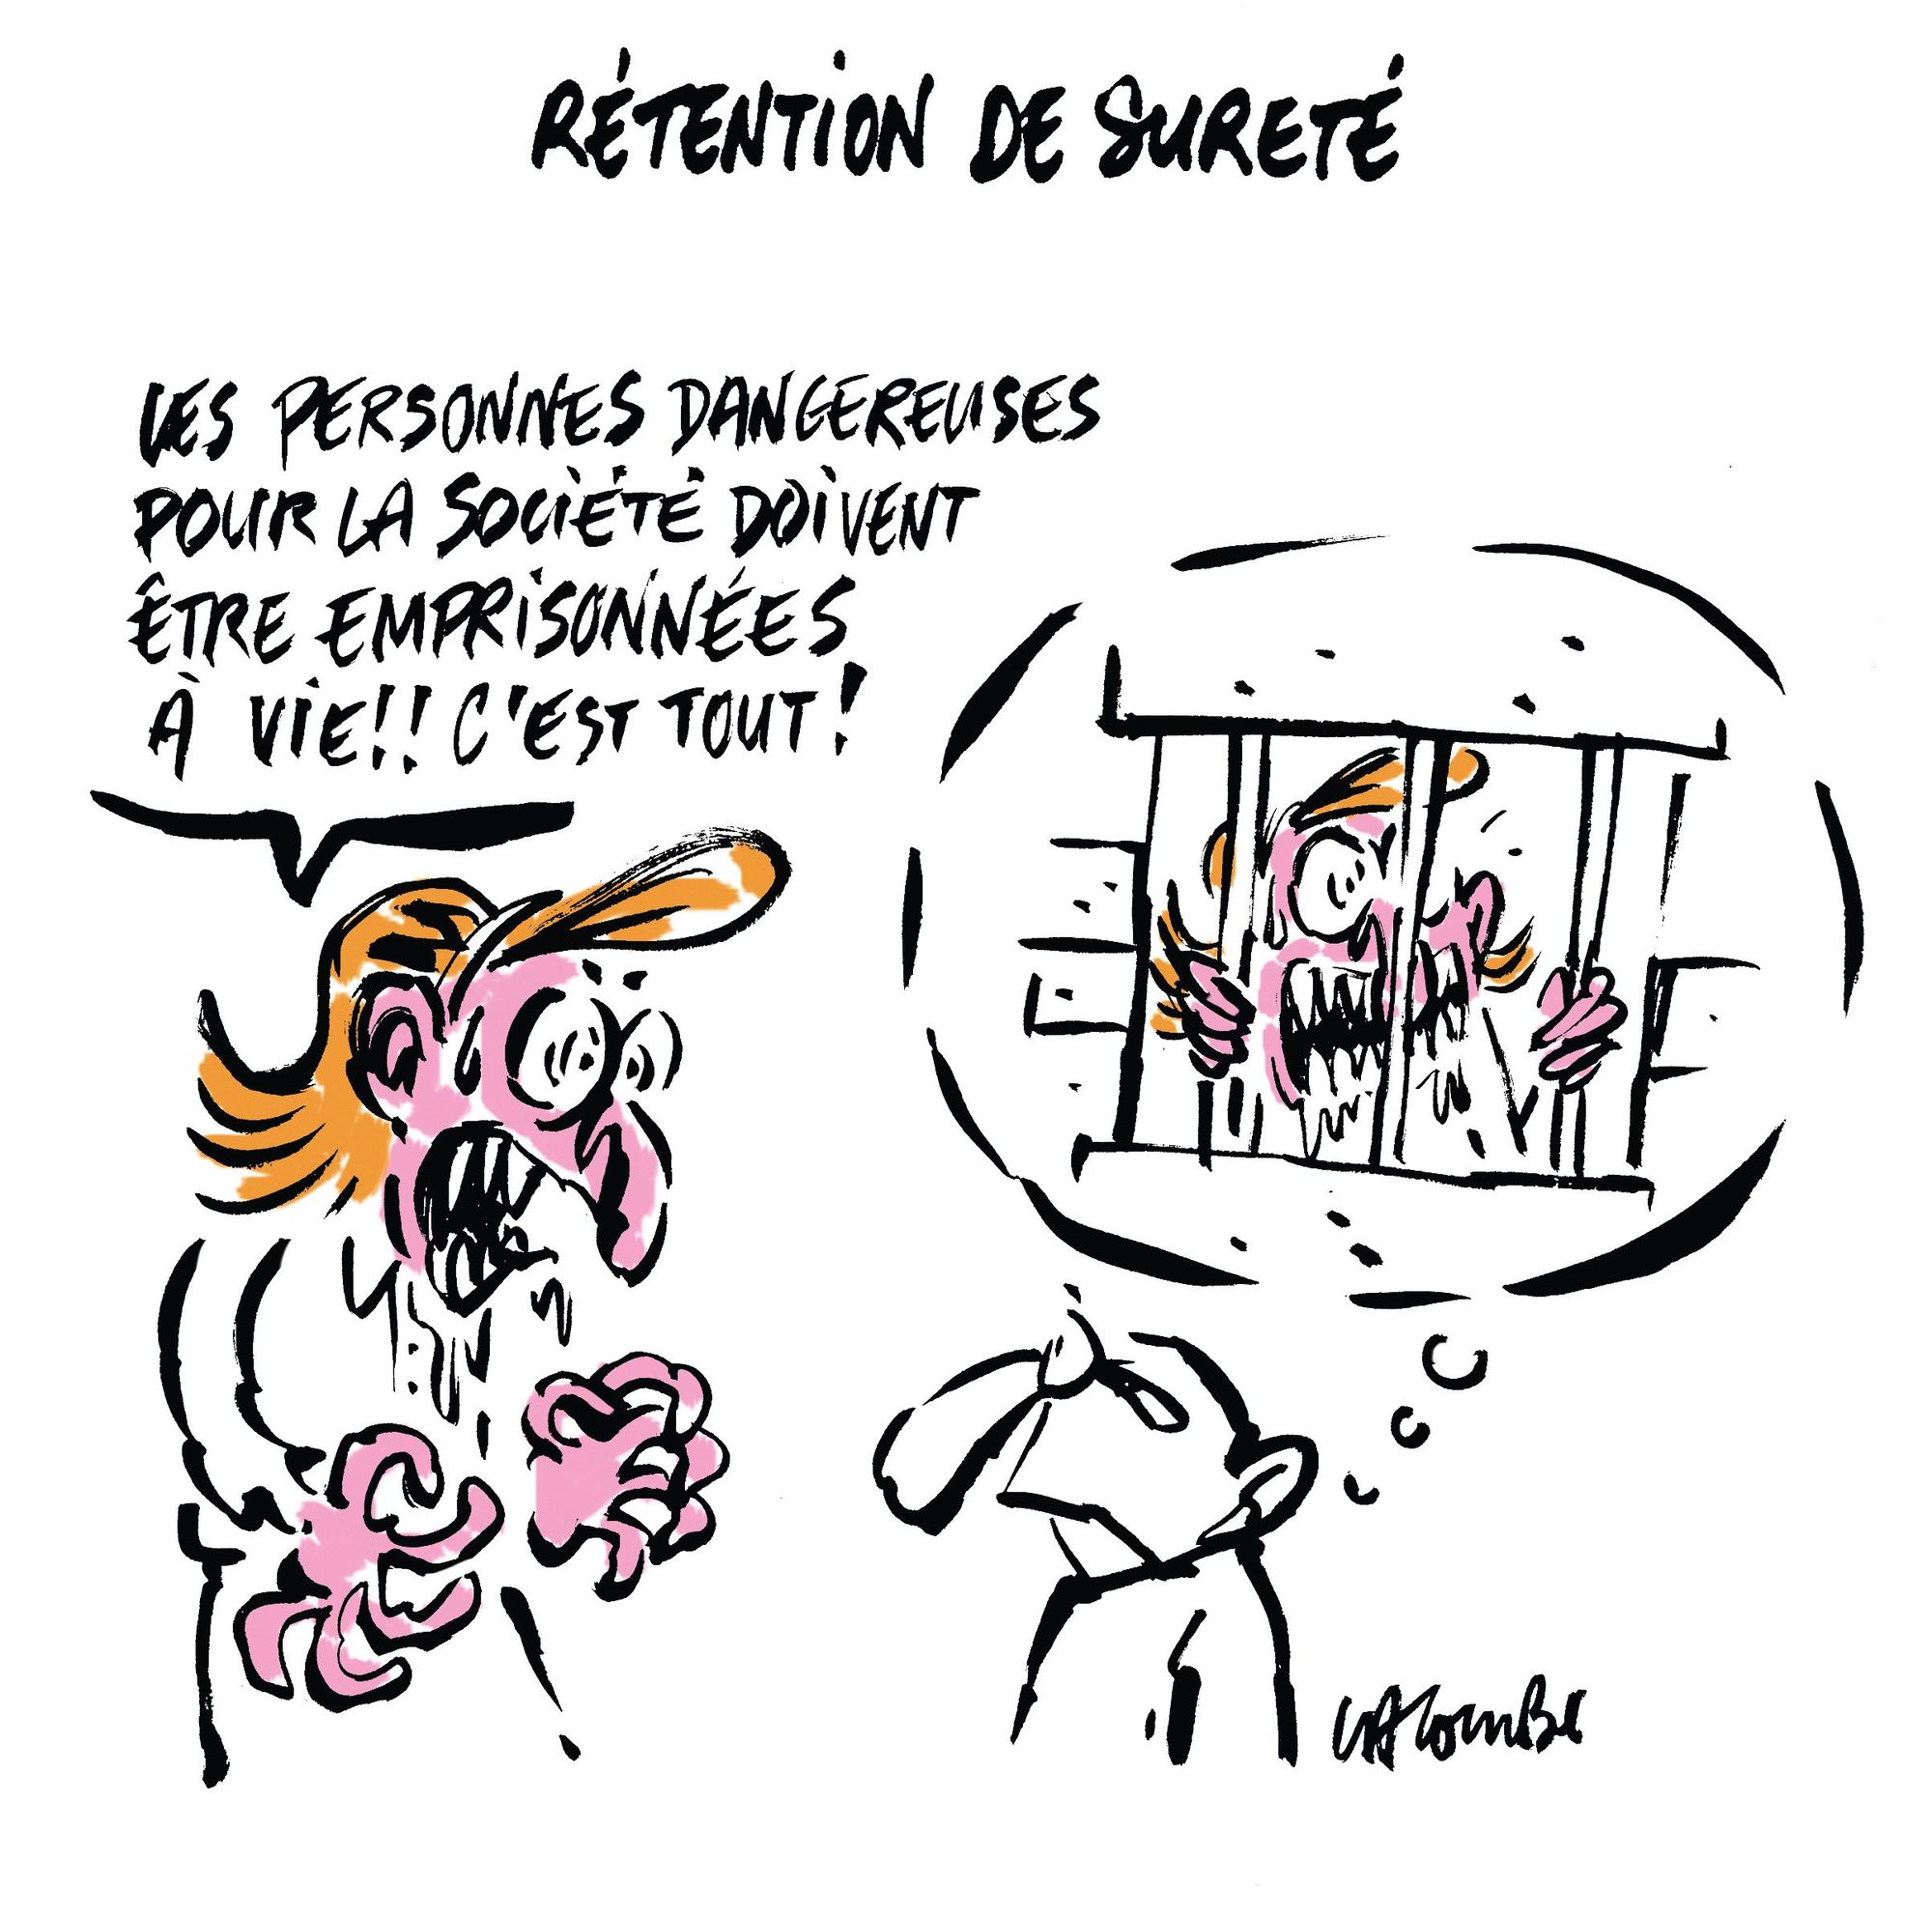 Lacombe, « Rétention de sûreté », caricature, 2008.